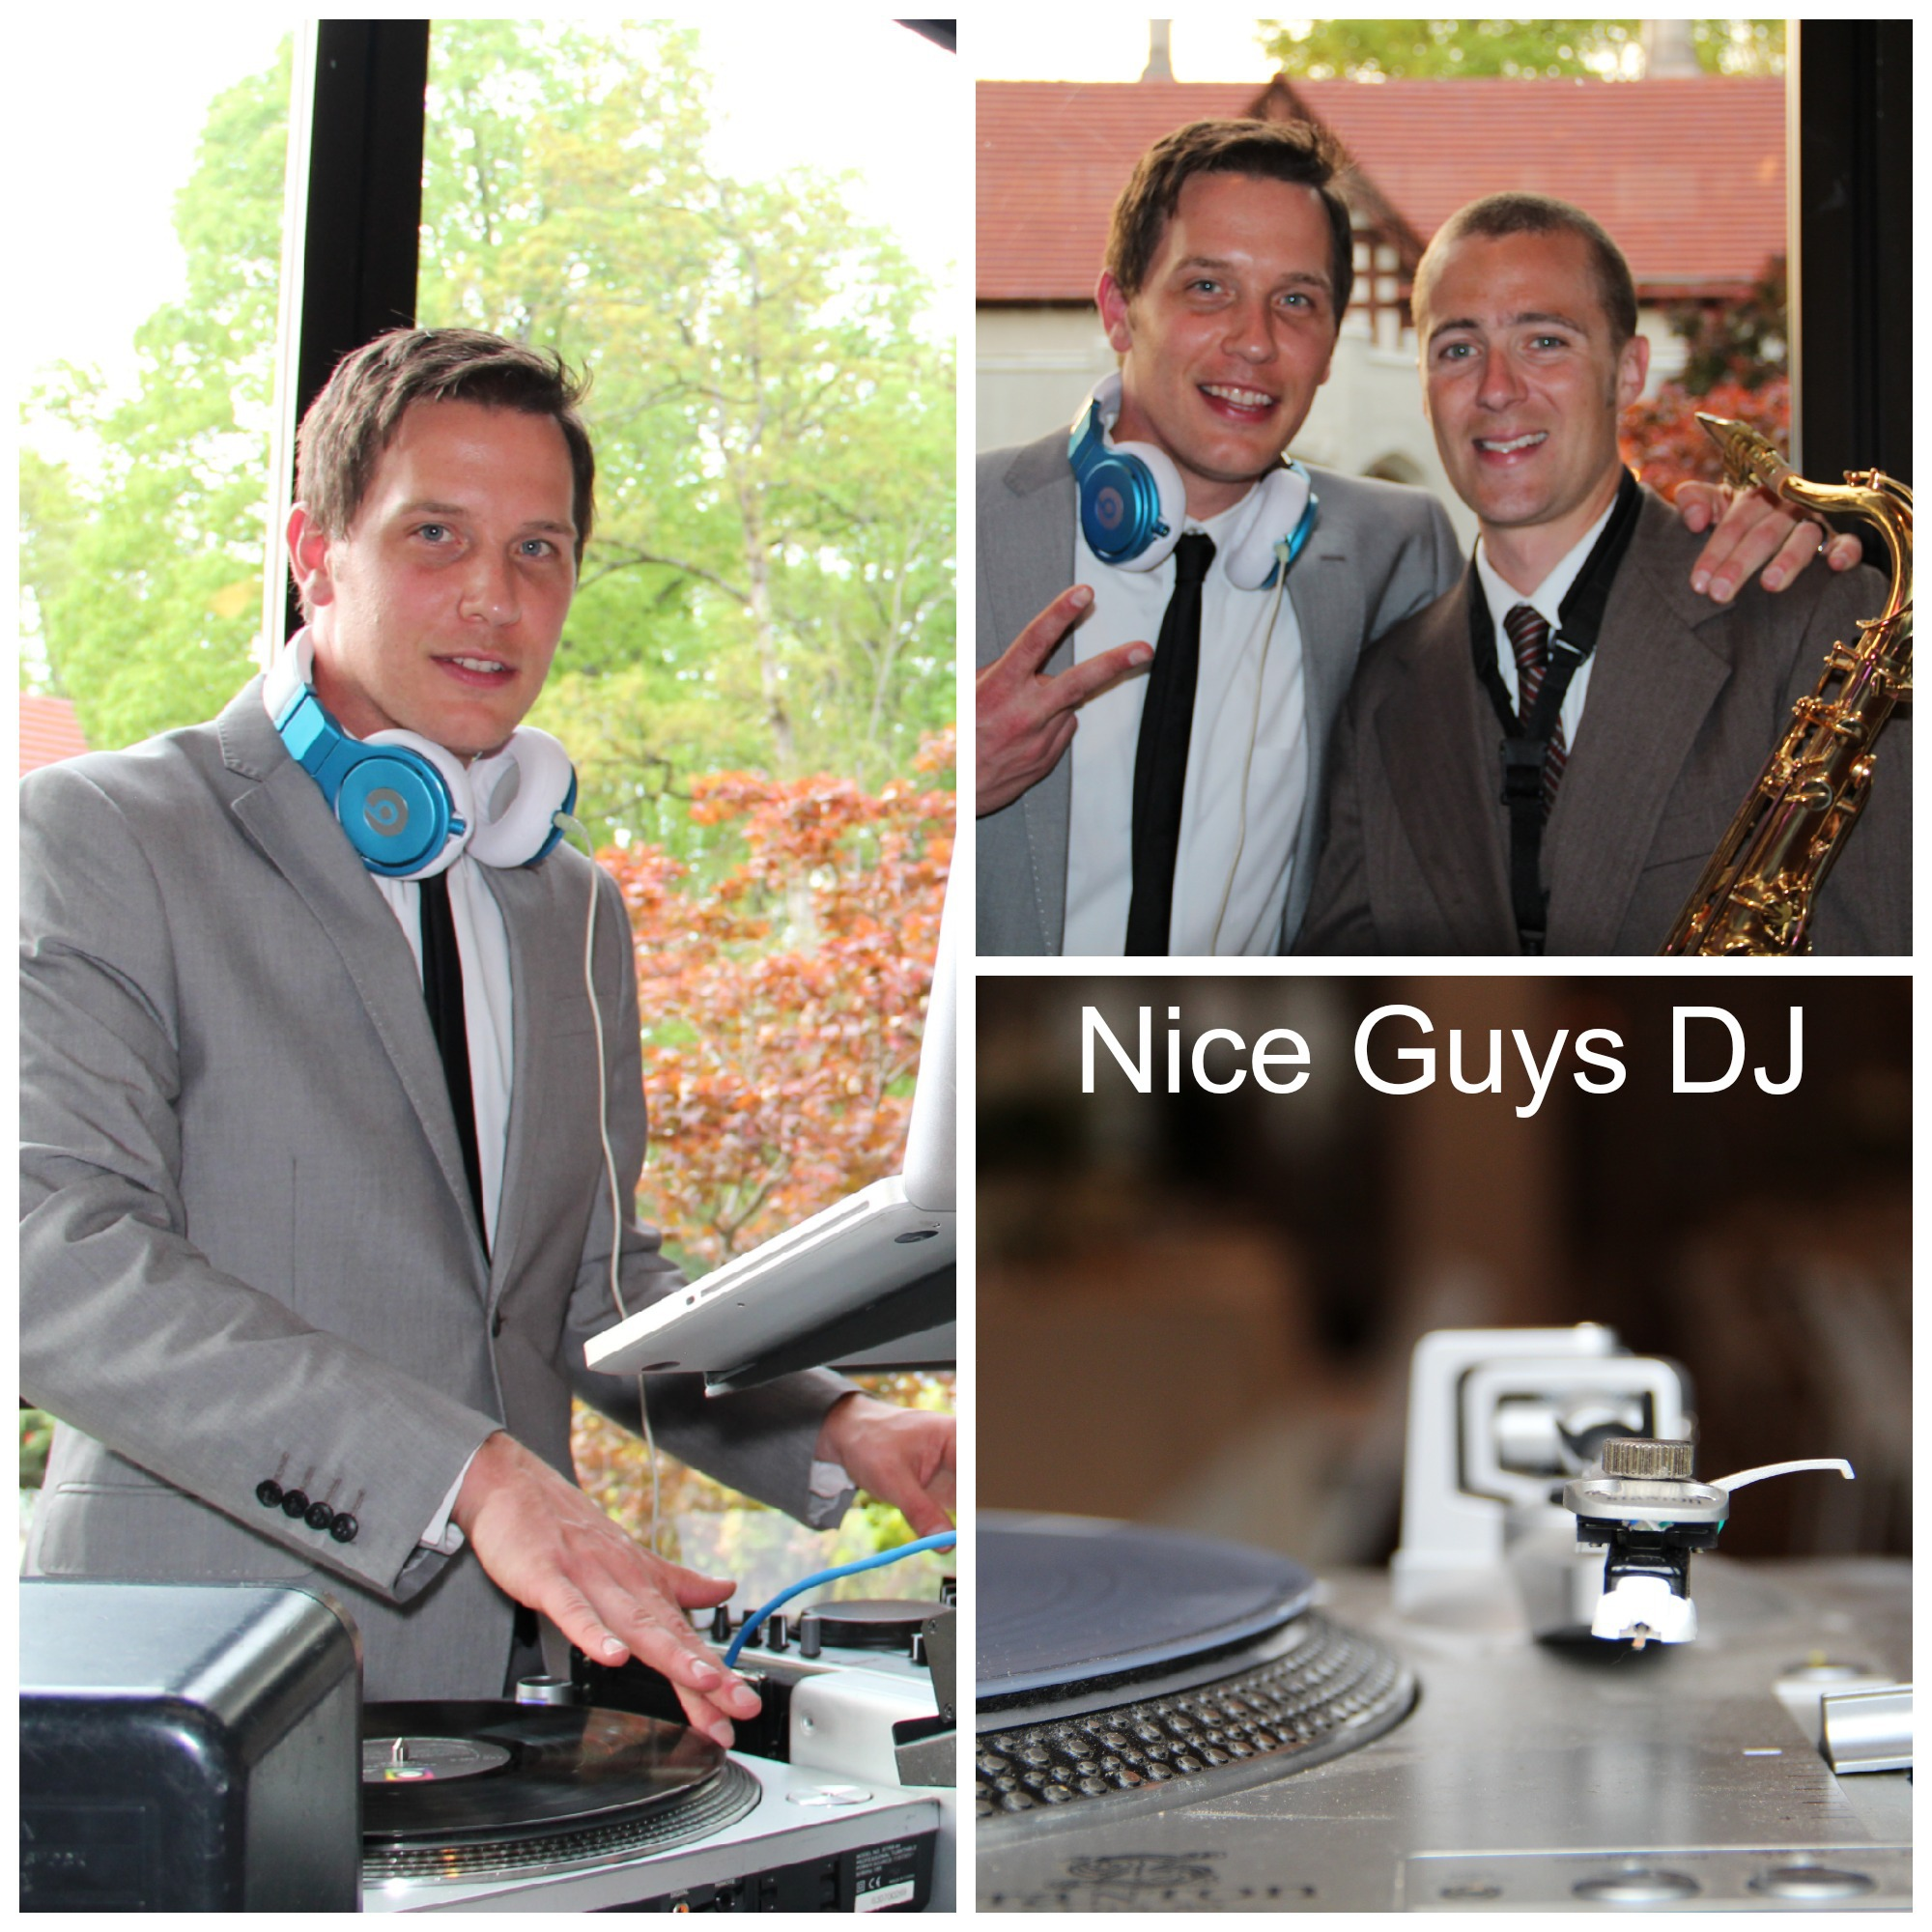 NiceGuysDJ with Will logo.jpg.jpg.jpg